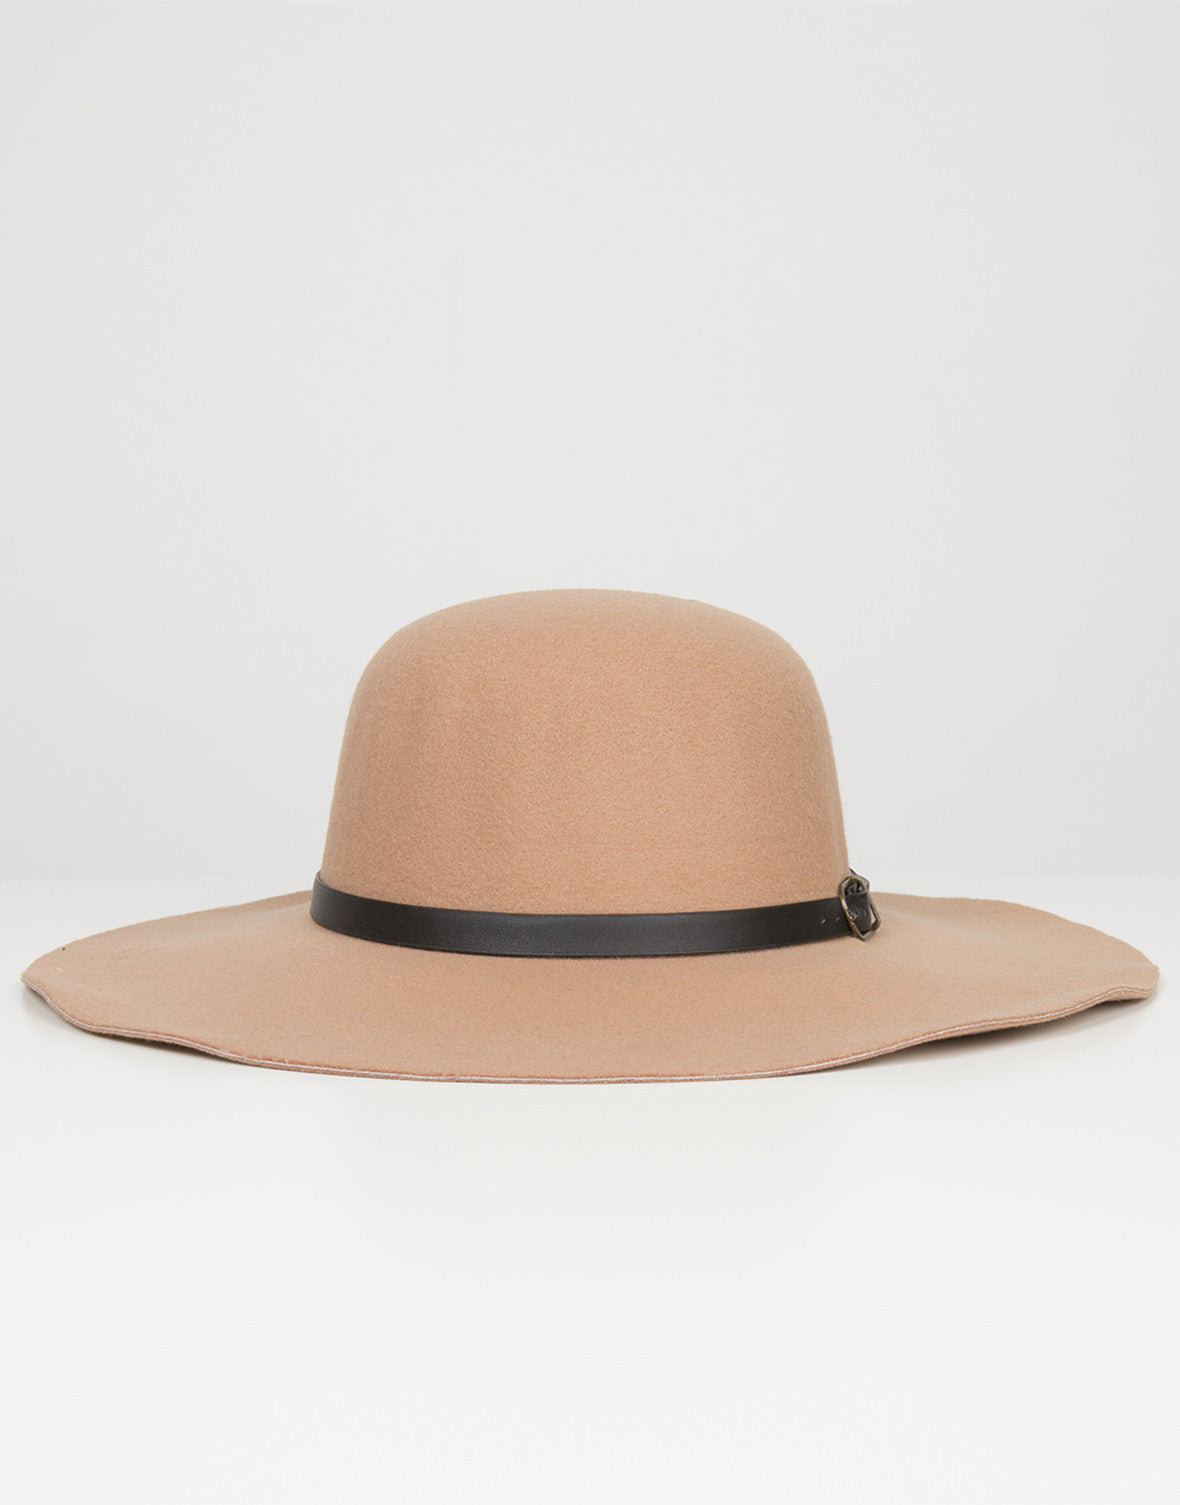 Front View of Belted Floppy Hat